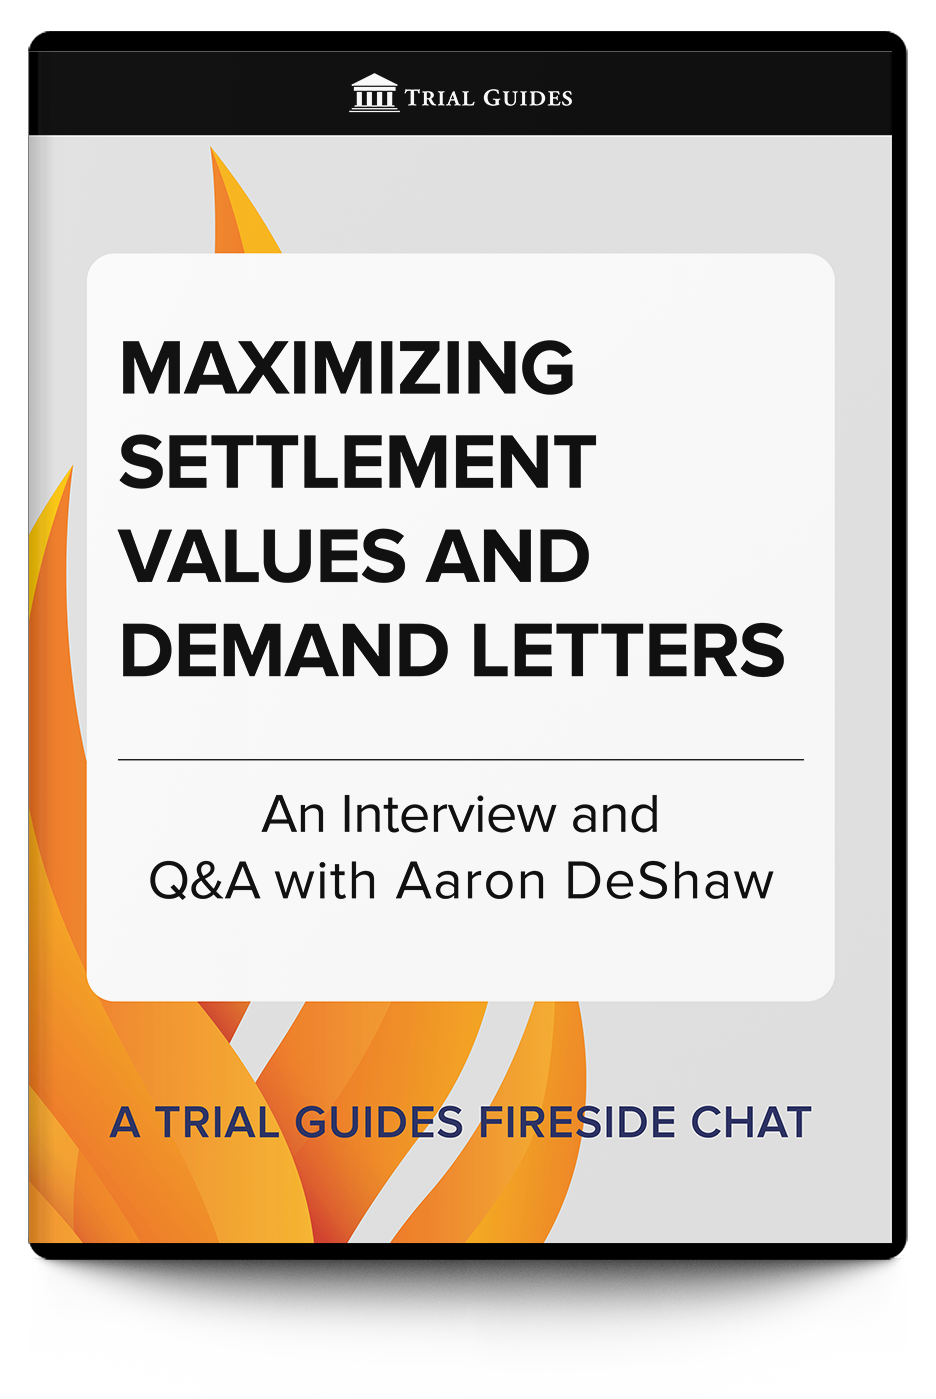 Maximizing Settlement Values and Demand Letters